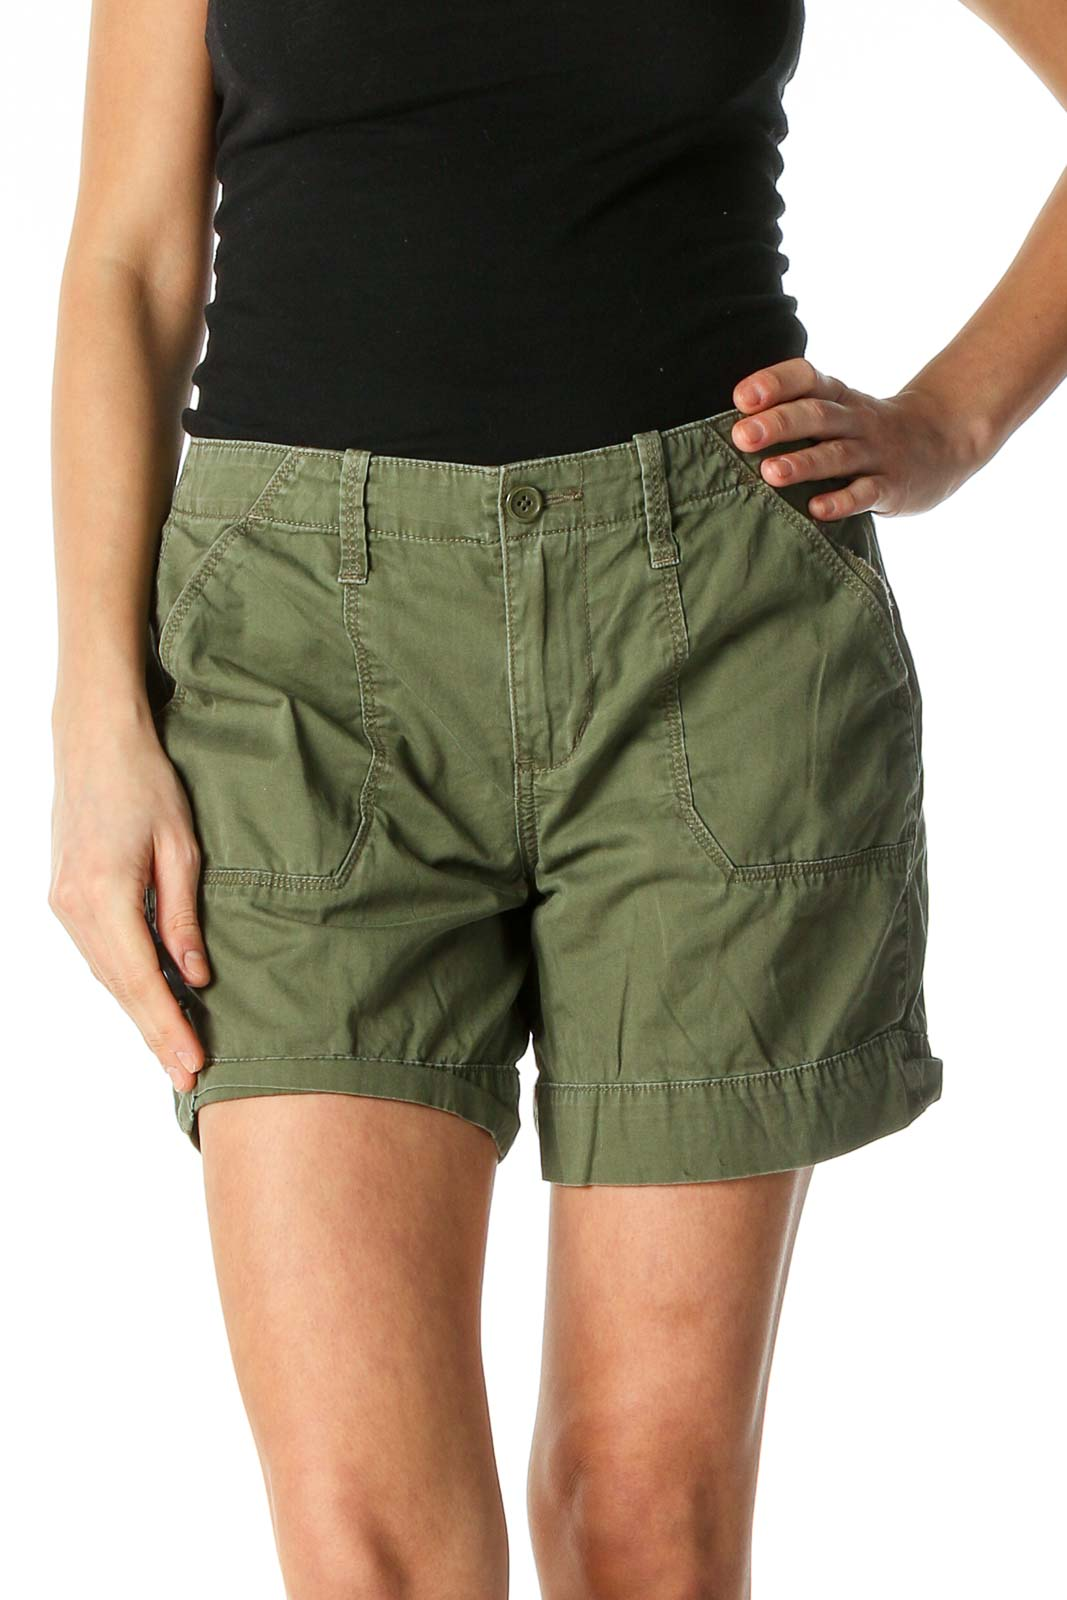 Green Solid Casual Shorts Front